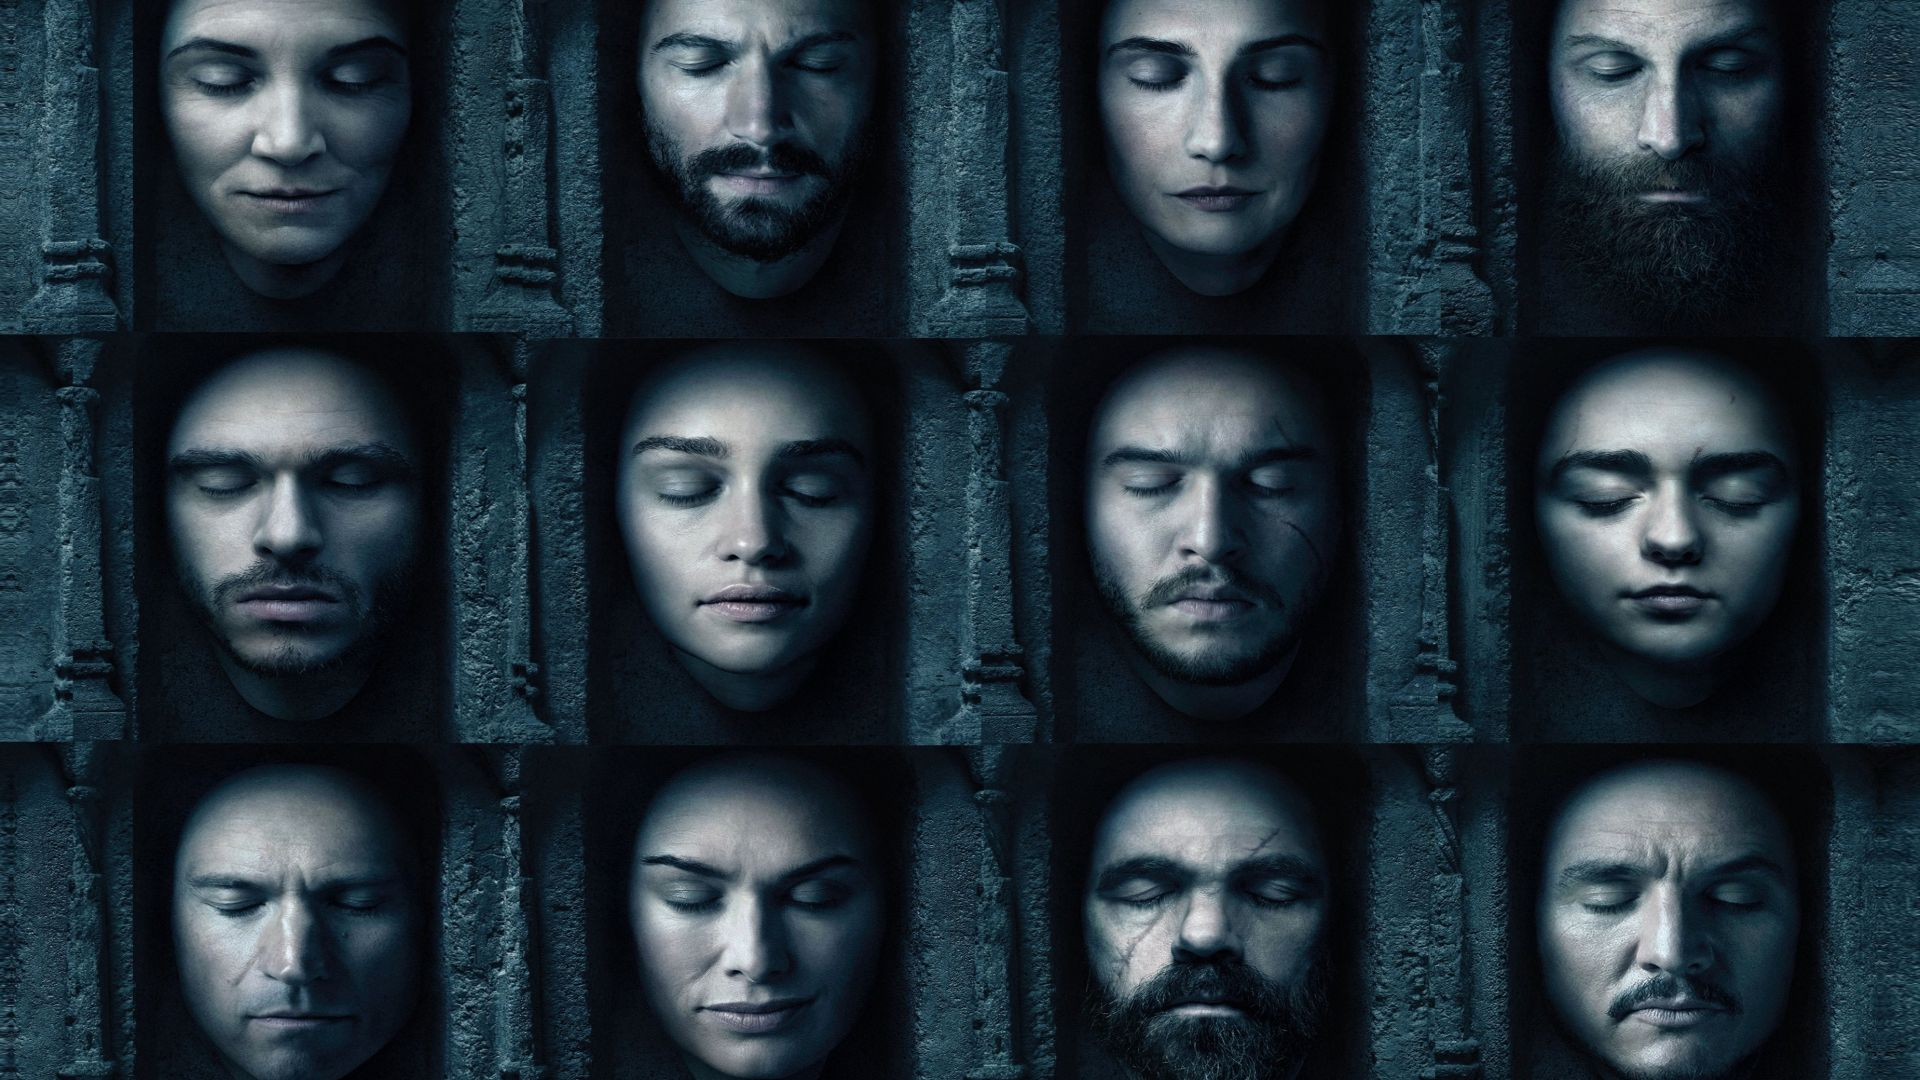 Game of Thrones, 6 season, Jon Snow, Kit Harington (horizontal)